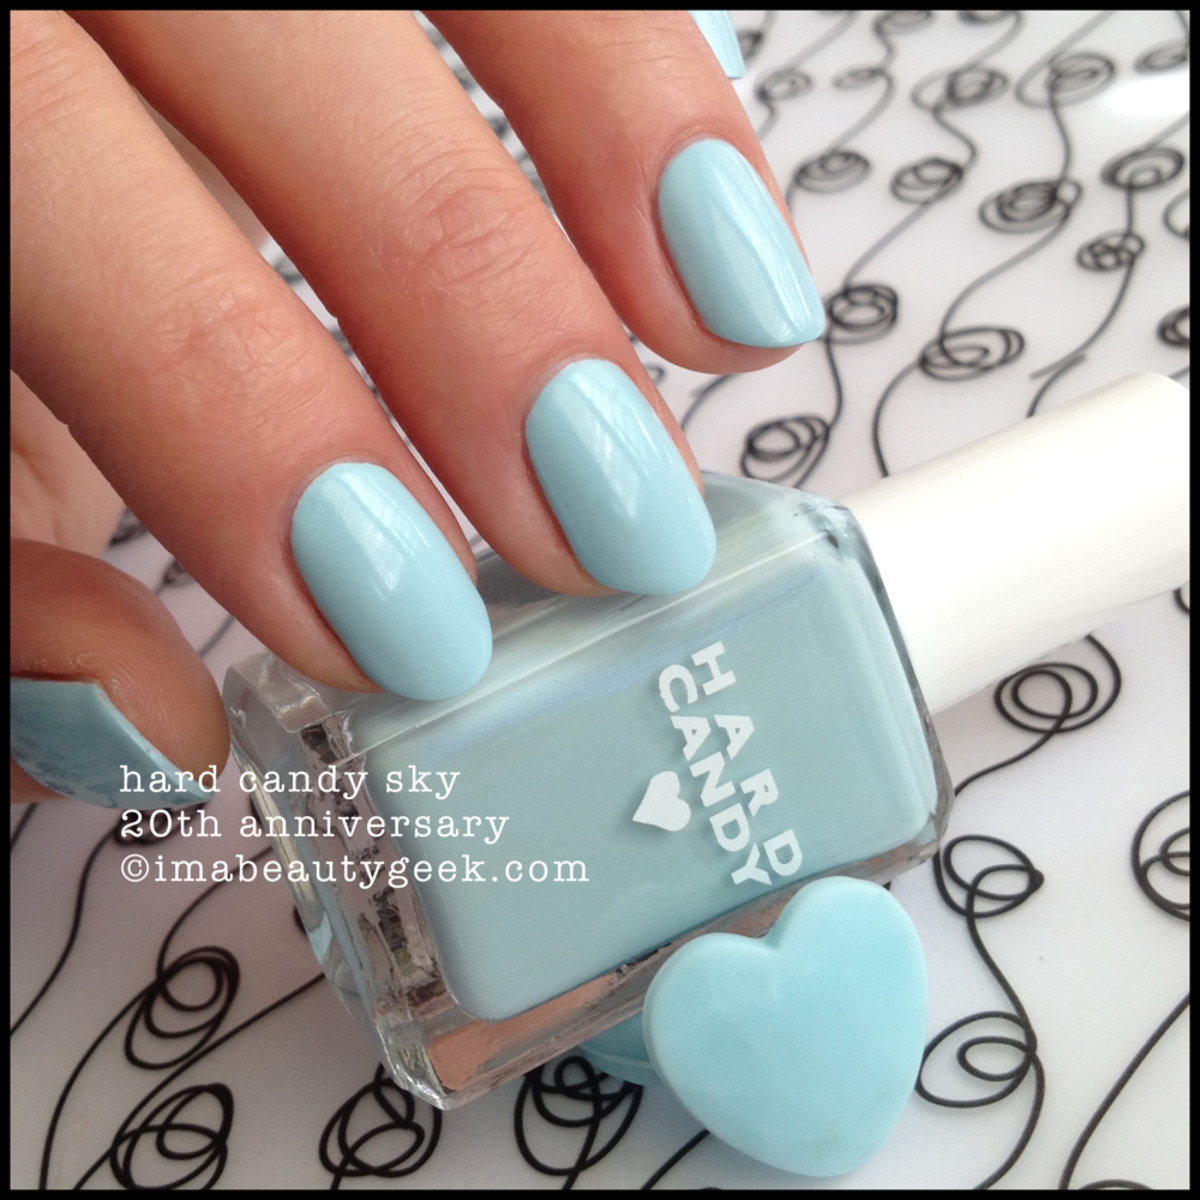 Hard Candy Sky 20th Anniversary Nail Polish